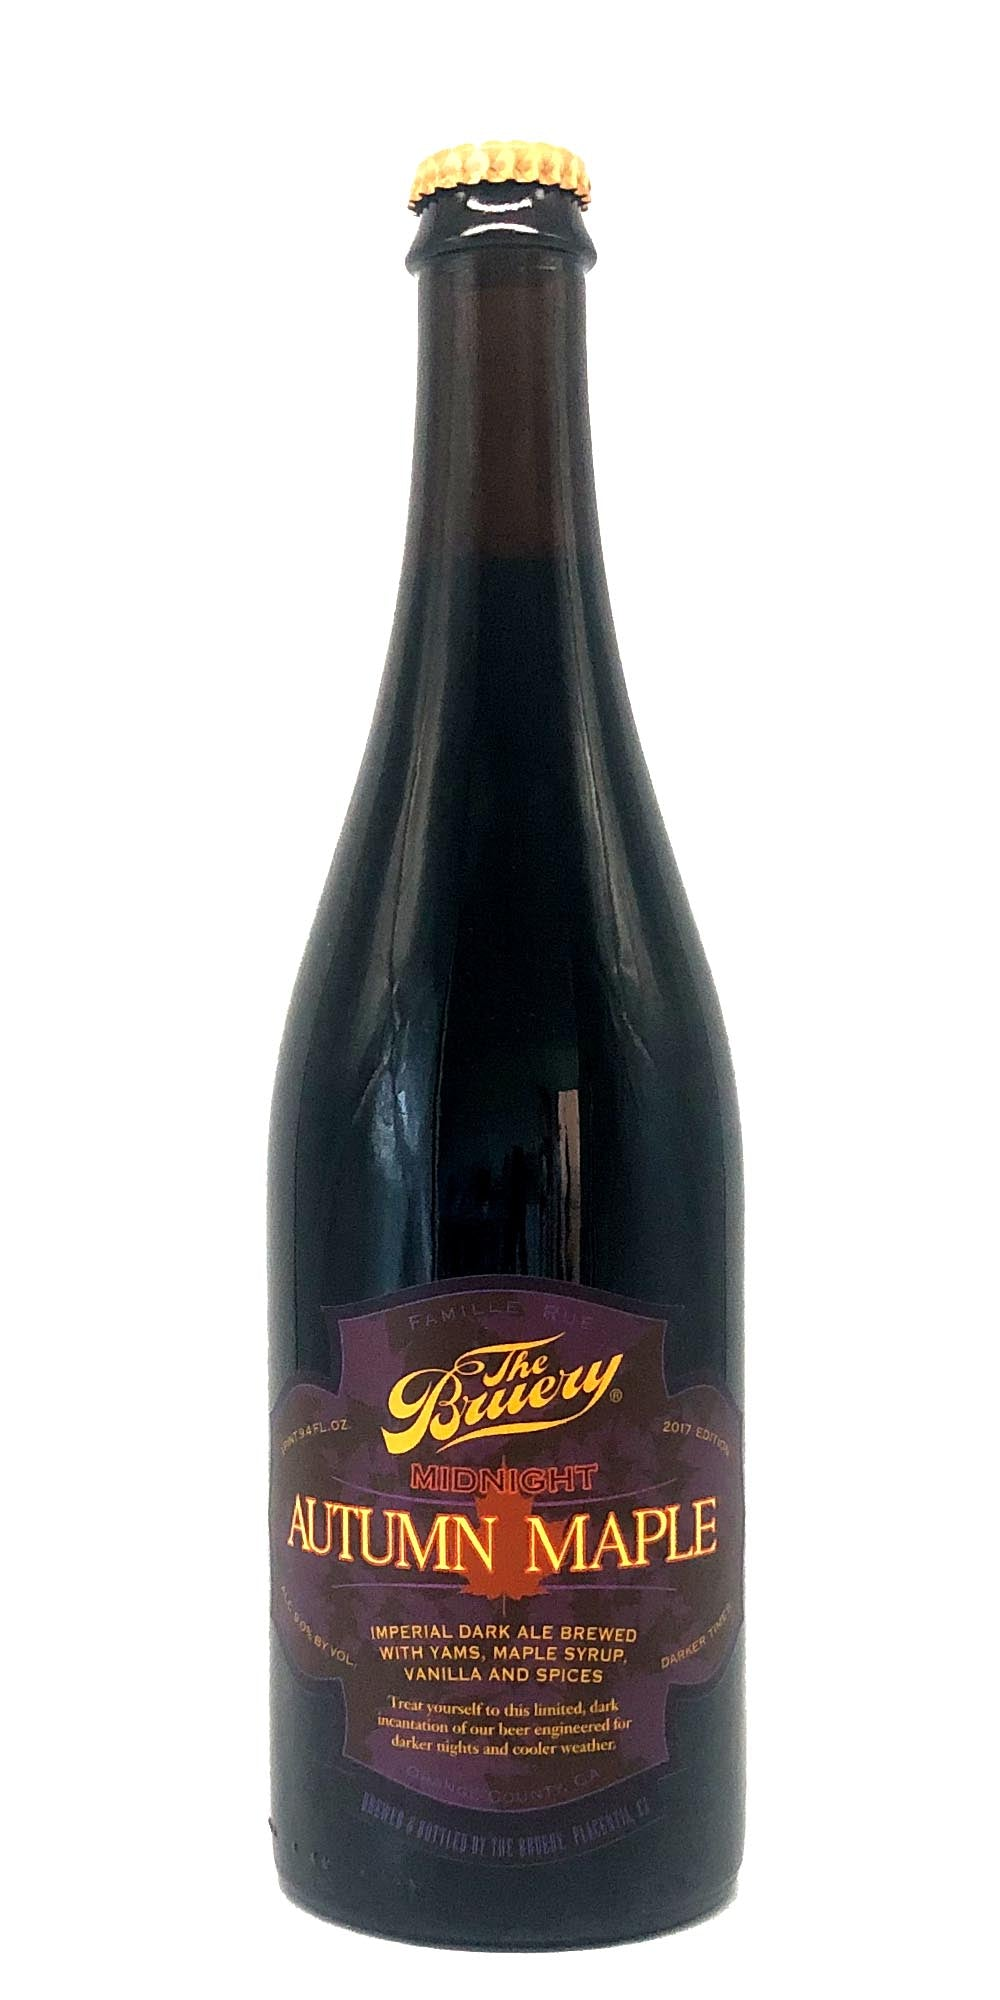 The Bruery - Midnight Autumn Maple - Drikbeer - Order Craft Beer Online